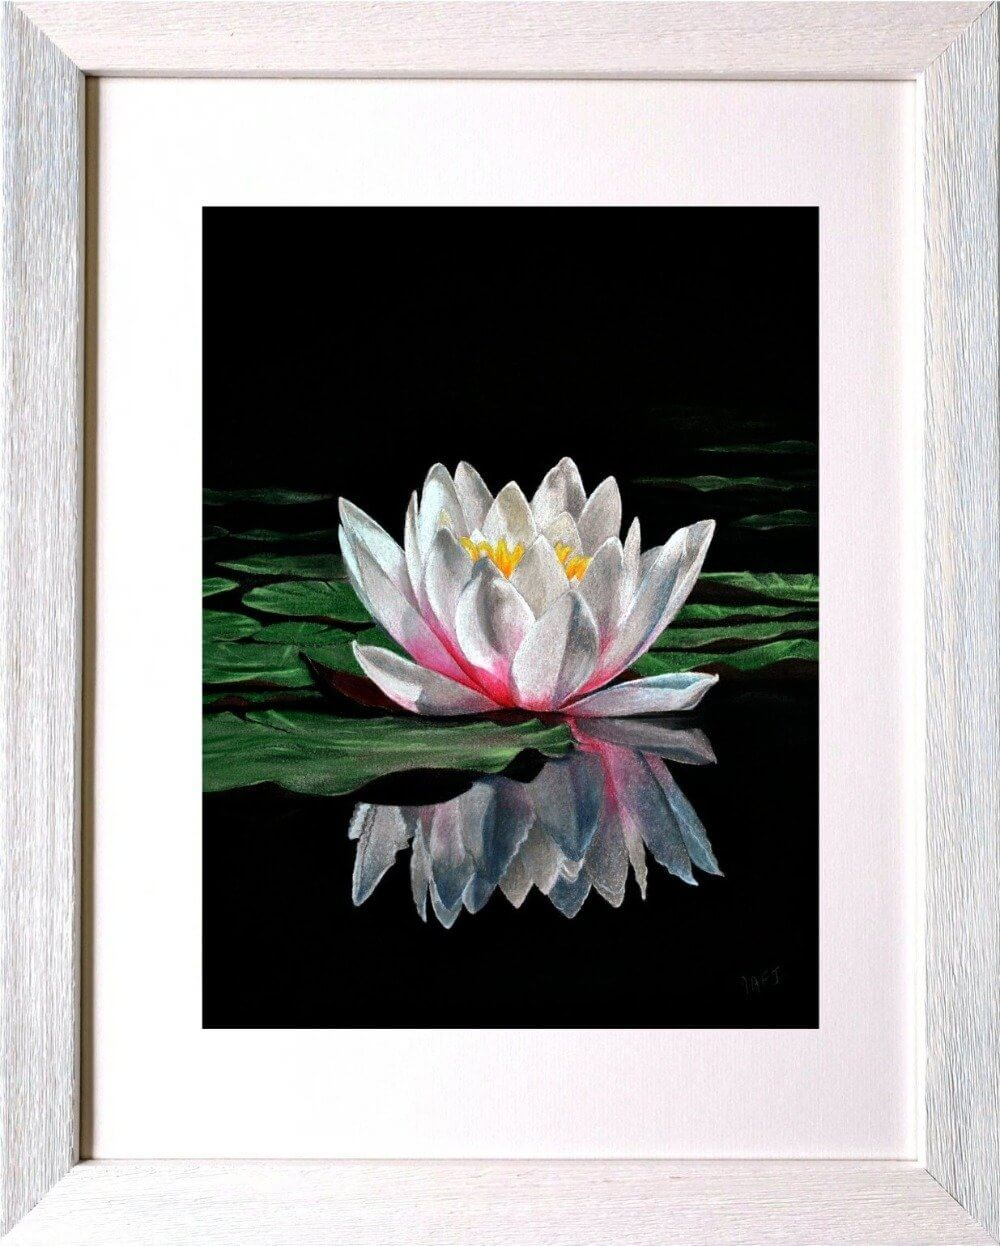 Waterlily reflections in frame. Ivan Jones Pastel Artist